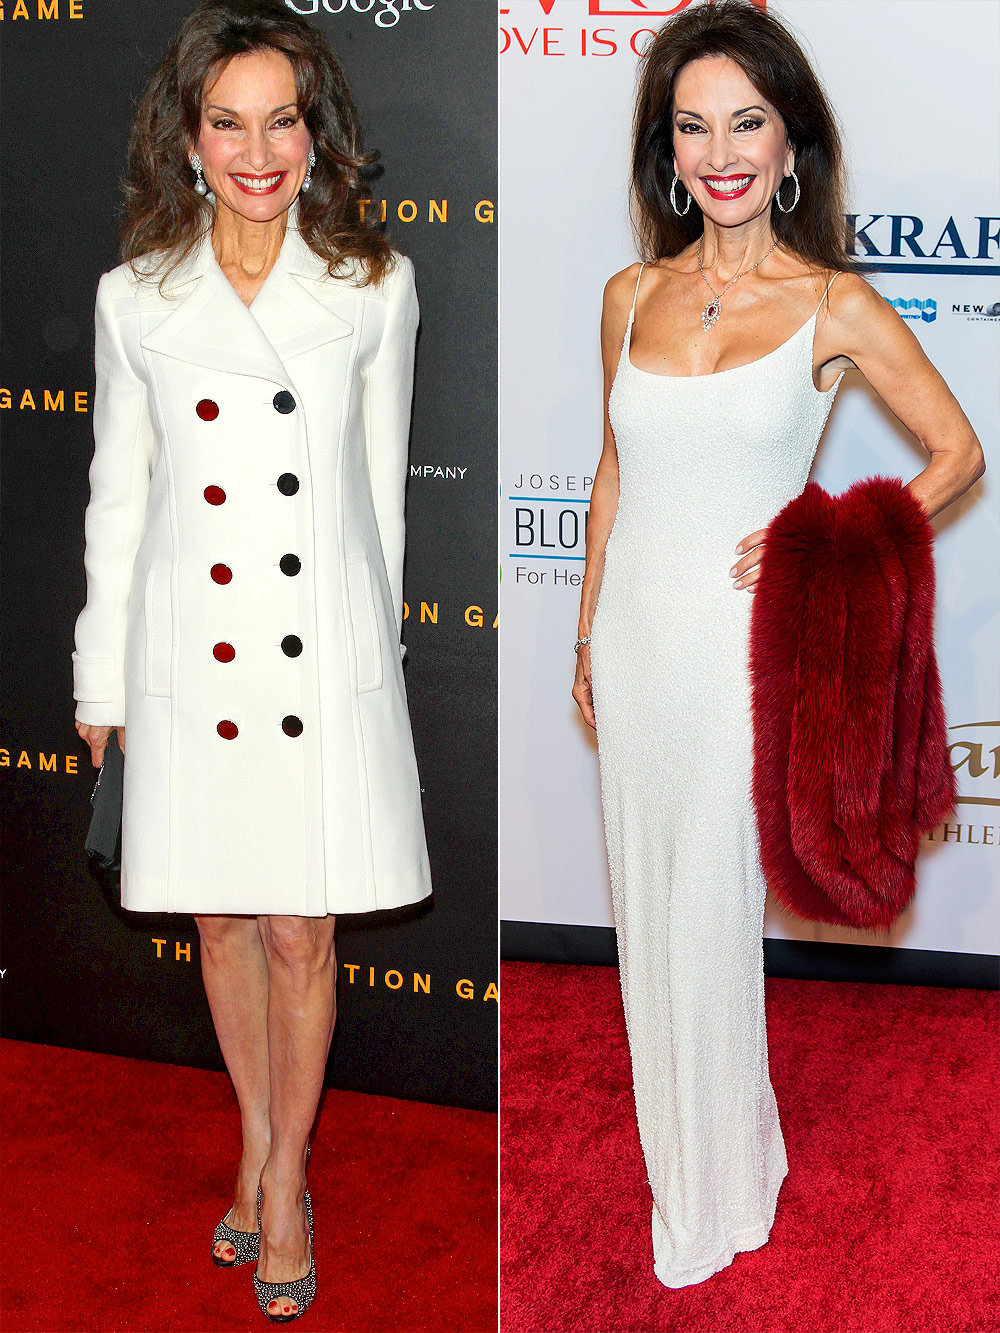 "NEW YORK, NY - NOVEMBER 17: Actress Susan Lucci attends the ""The Imitation Game"" New York Premiere at Ziegfeld Theater on November 17, 2014 in New York City. (Photo by Jim Spellman/WireImage)"